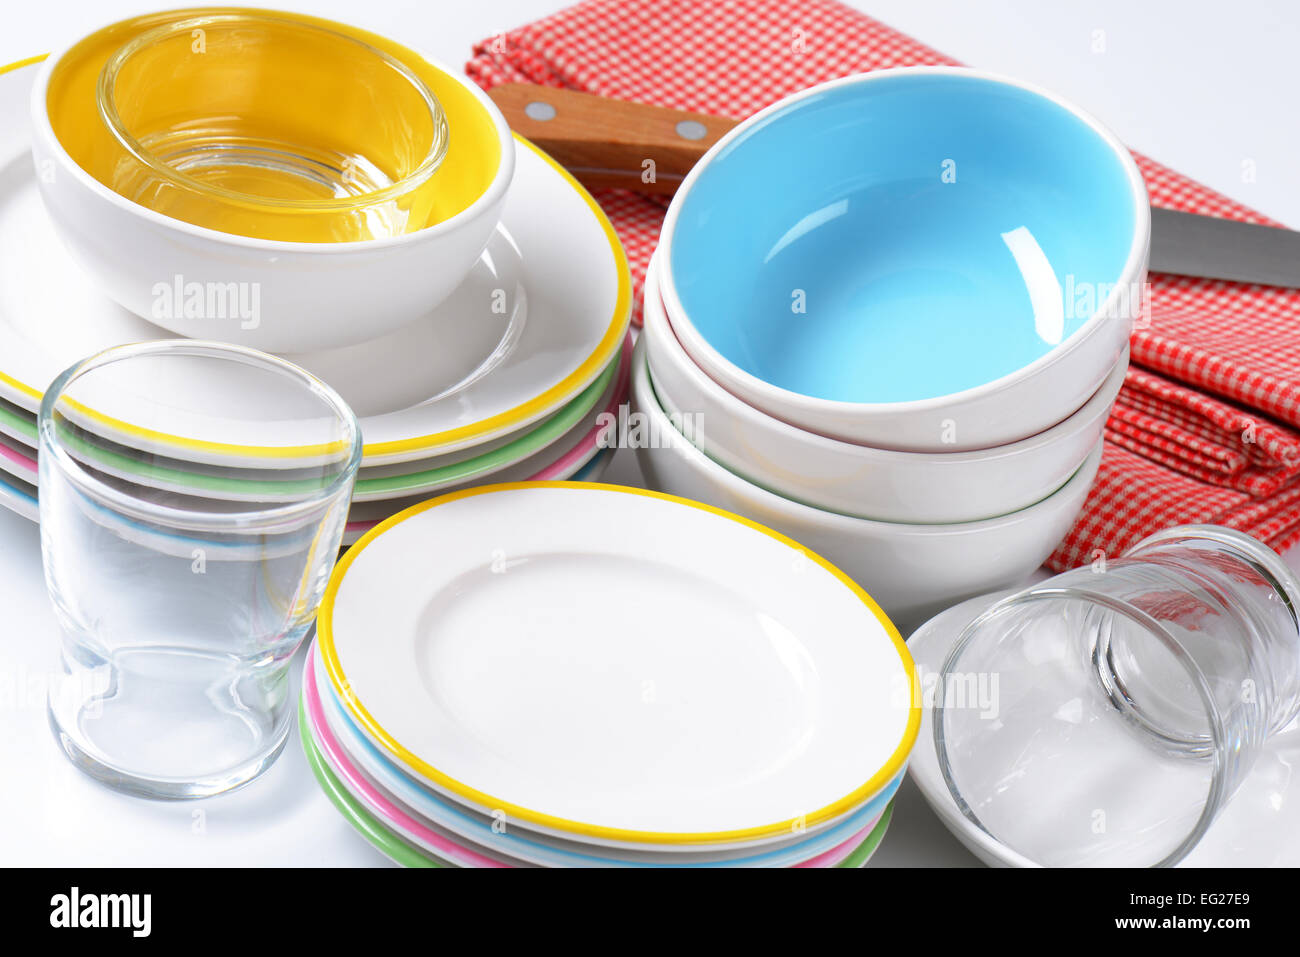 Dinner Plates Stock Photos Dinner Plates Stock Images Alamy